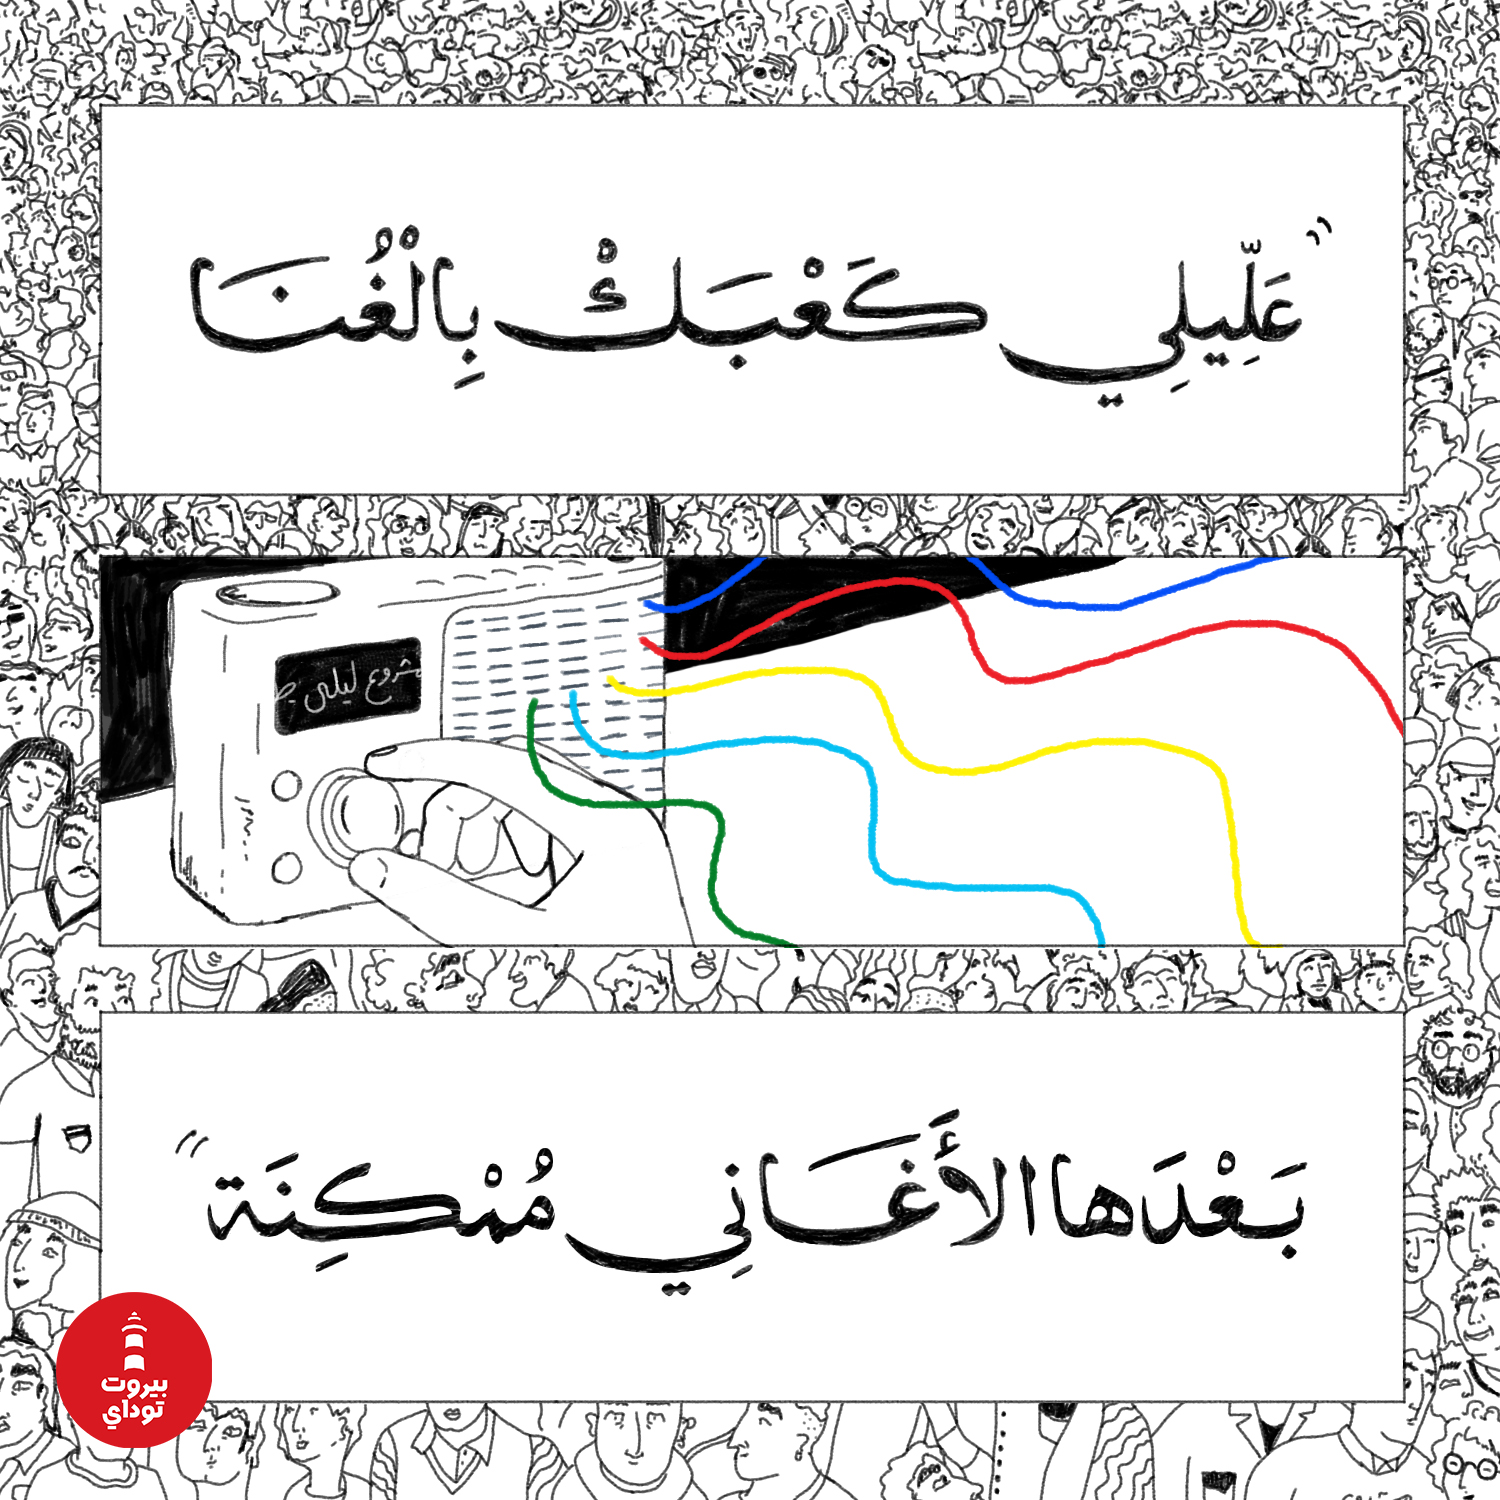 Lyrics from Mashrou' Leila's Tayf (Ghost). (Christina Atik | Beirut Today)